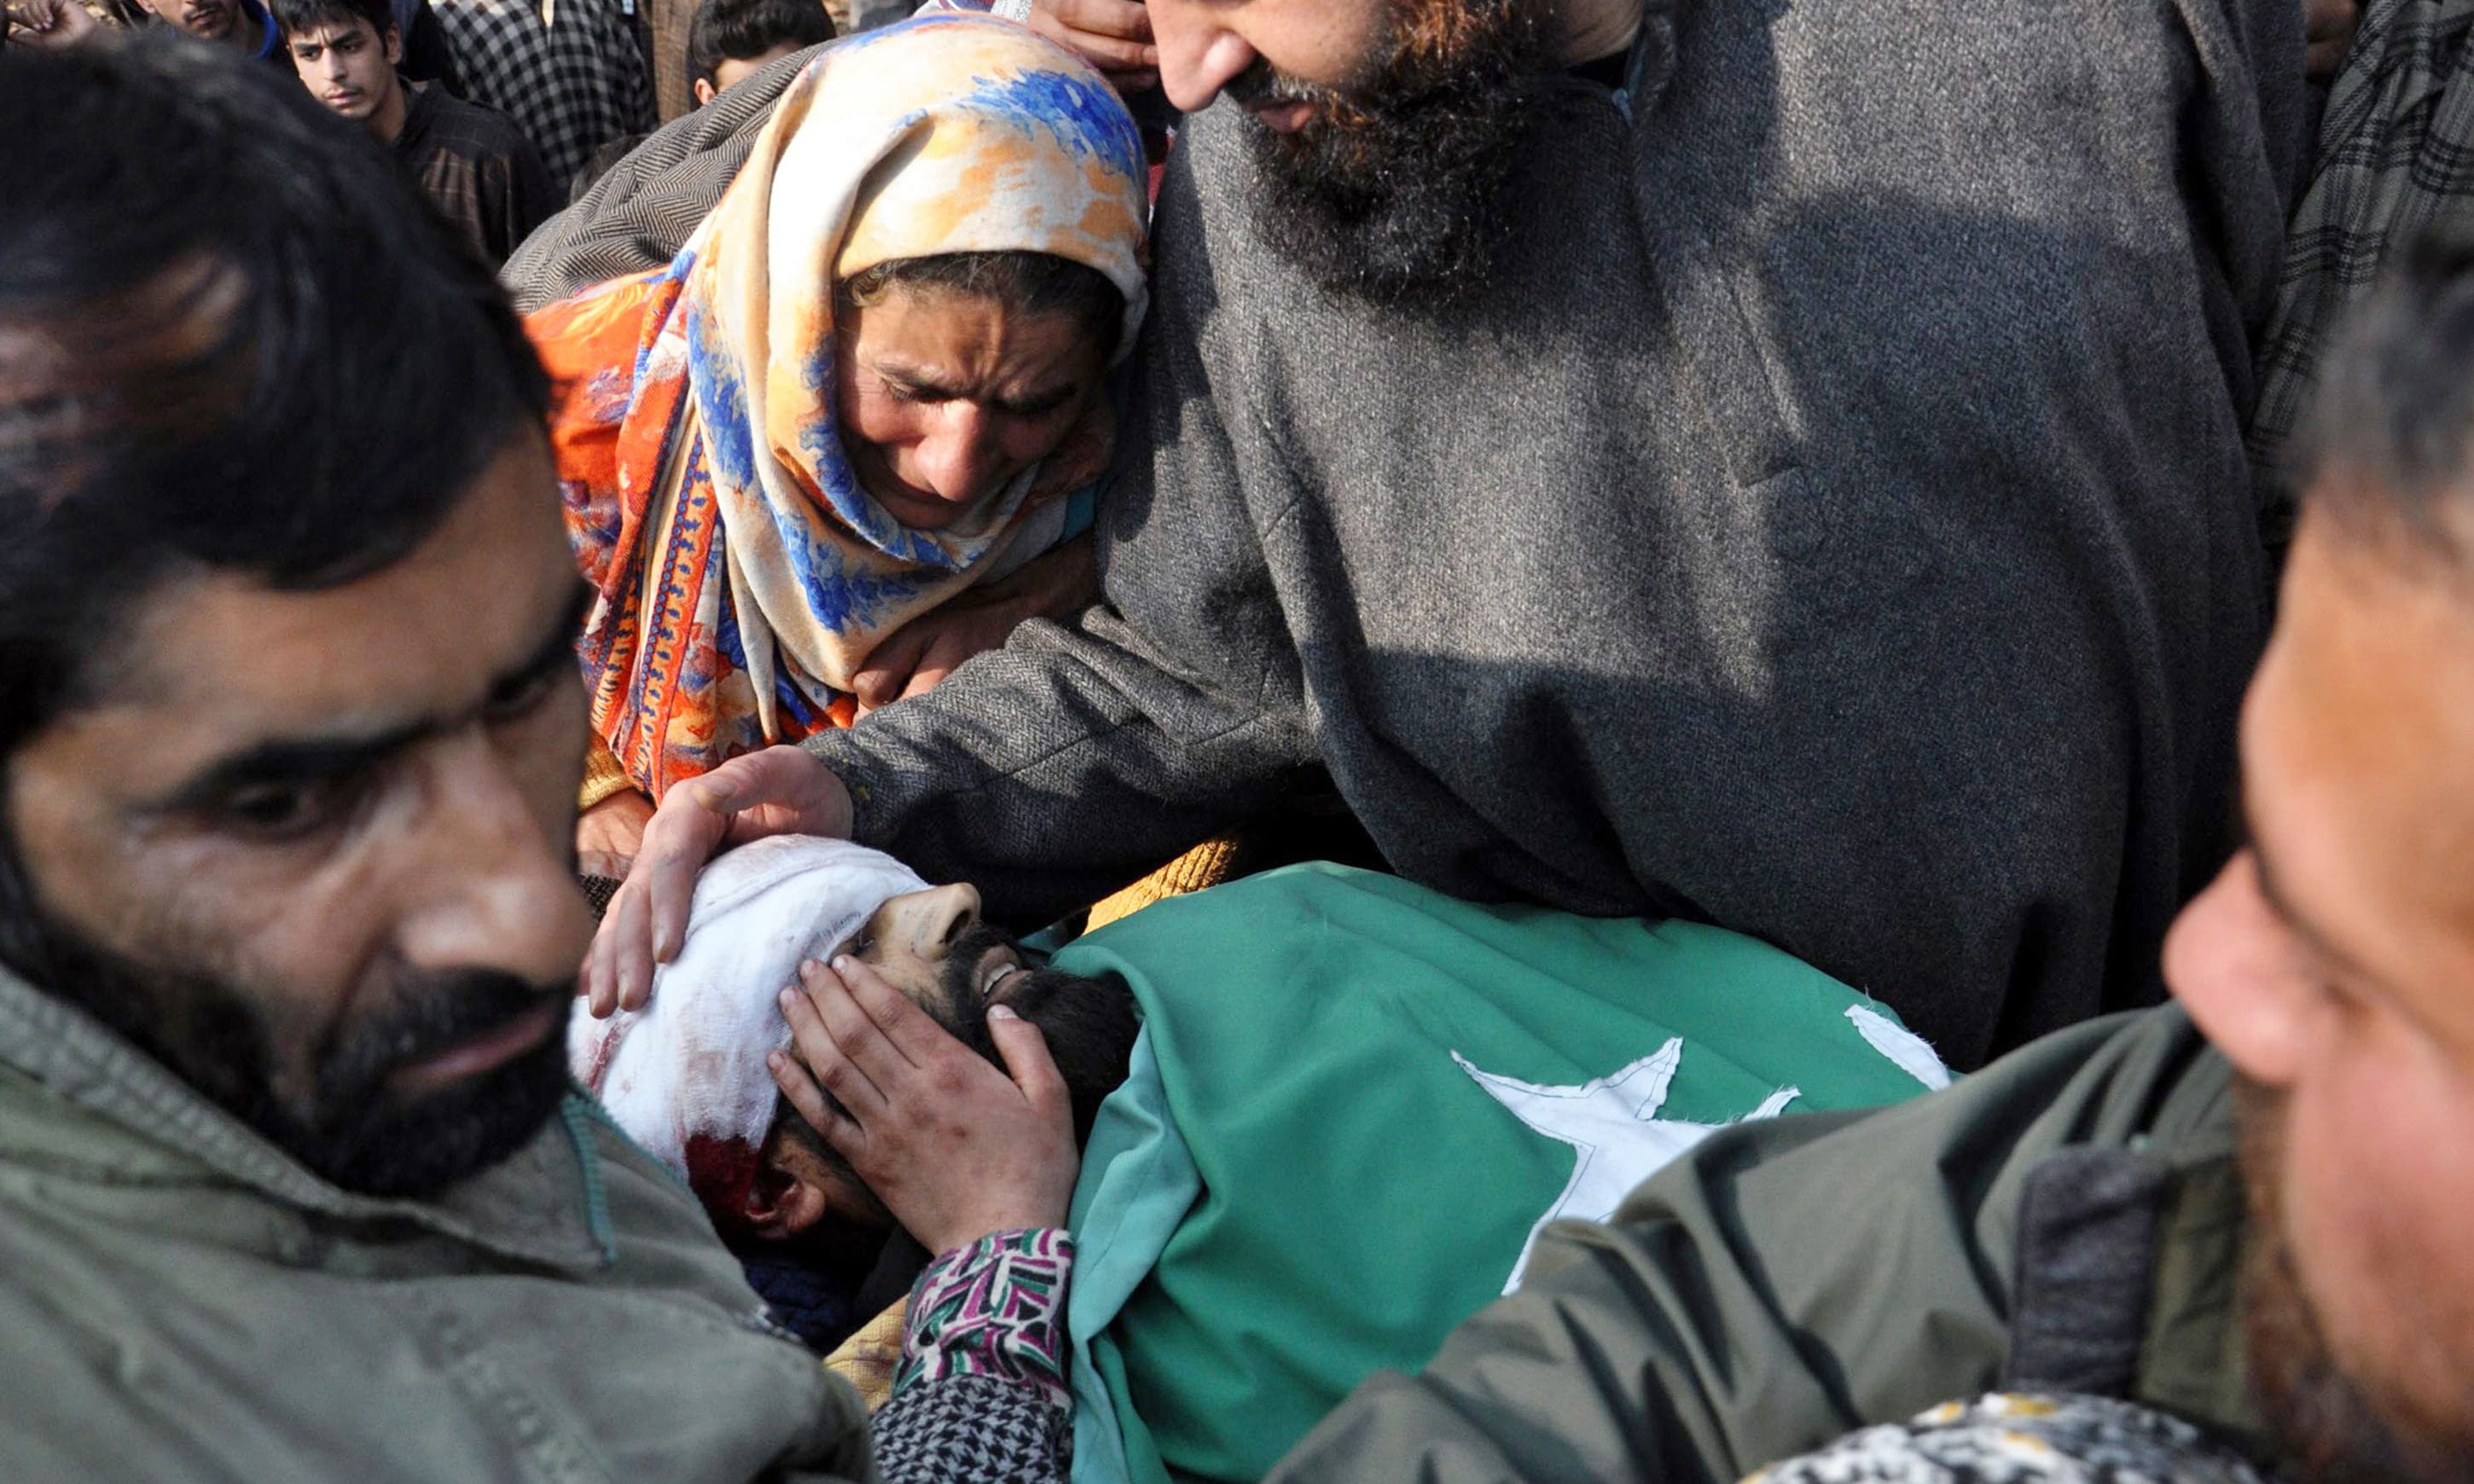 Relatives mourn over the body of Tehreek-e-Hurriyat leader Hafizullah Mir in Kashmir's Anantnag district. —AP